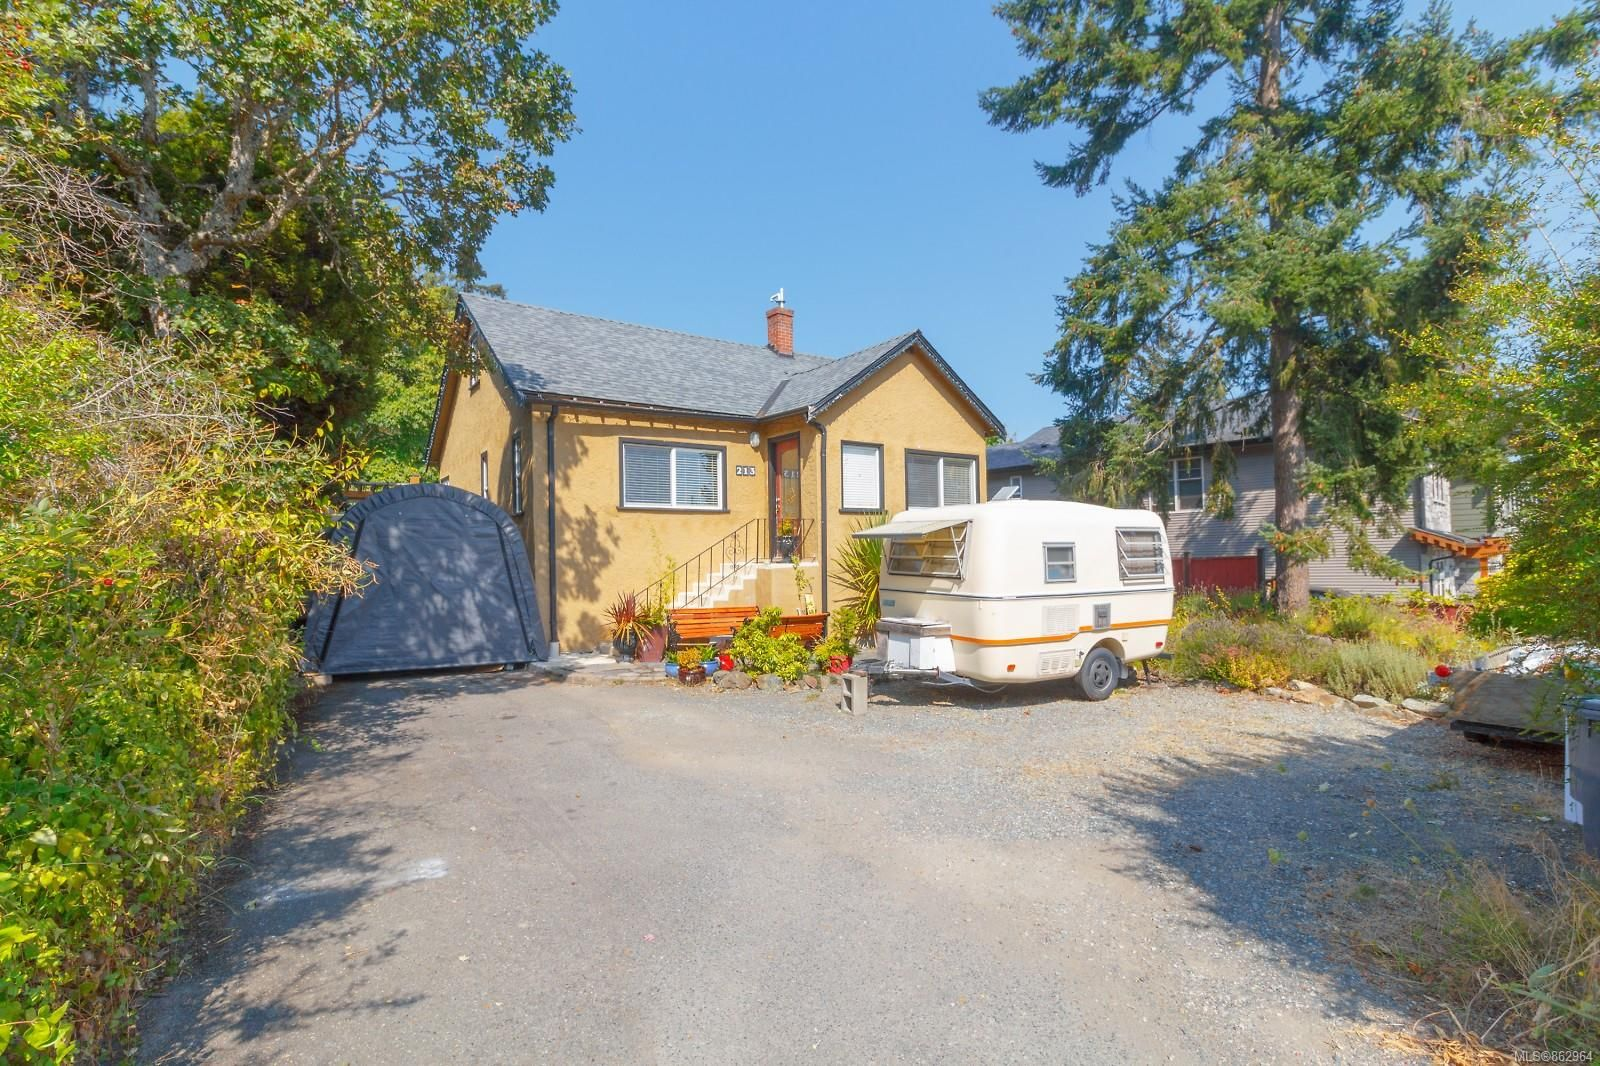 Main Photo: 213 Helmcken Rd in : VR View Royal House for sale (View Royal)  : MLS®# 862964